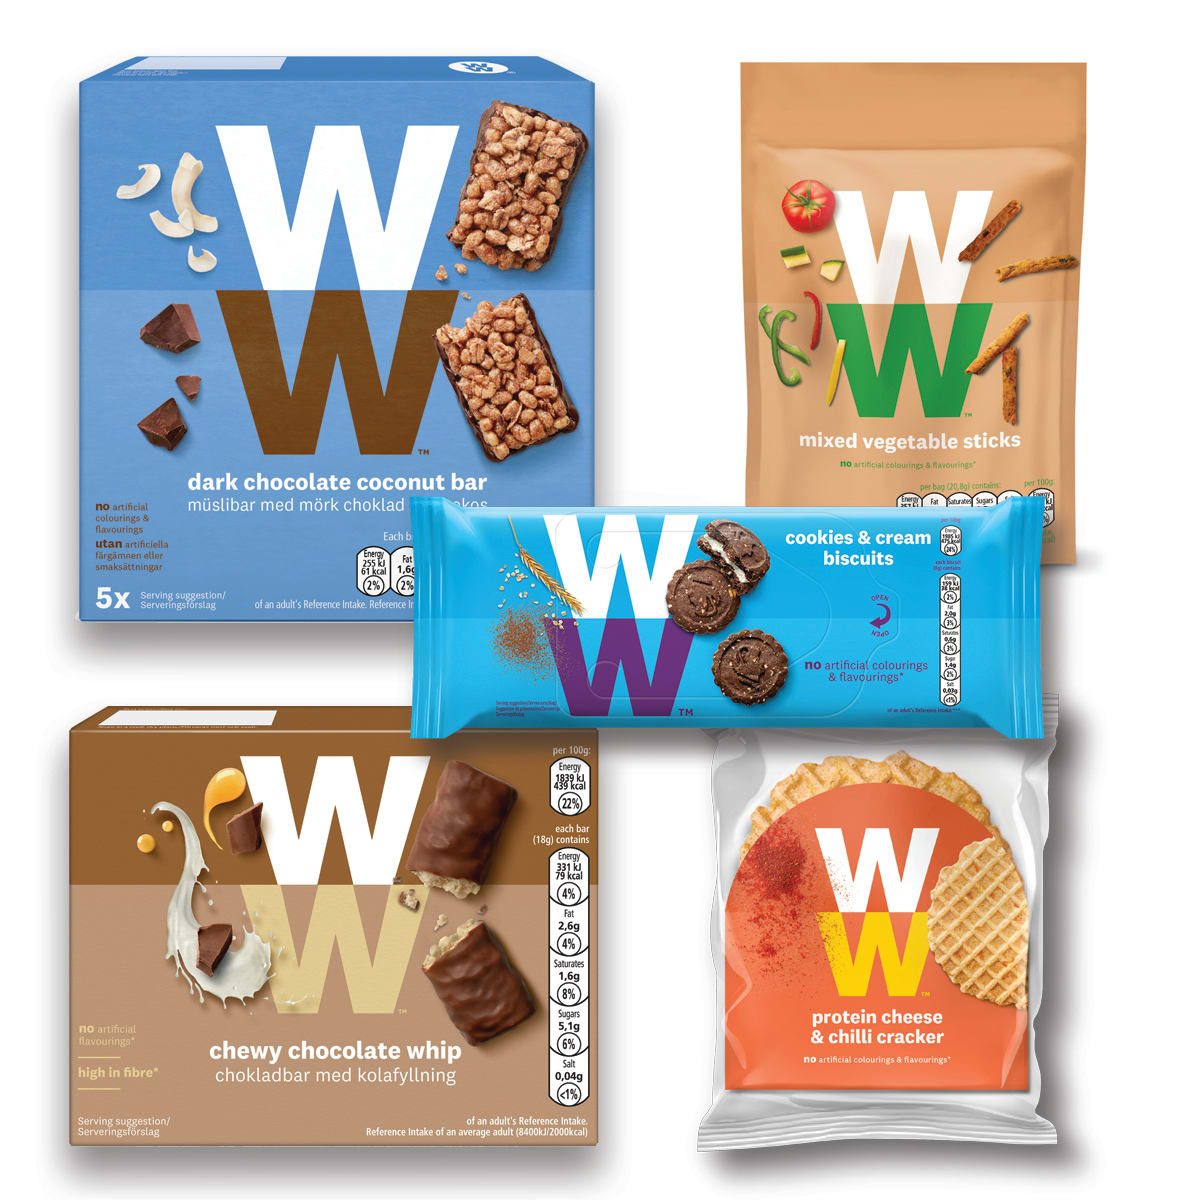 WW Essential Snacking Bundle, includes Cheese and Chilli Crackers, Mixed Vegetable Sticks, Chewy Whip Bar, Dark Chocolate and Coconut Cereal Bar, Cookies and Cream Biscuits.